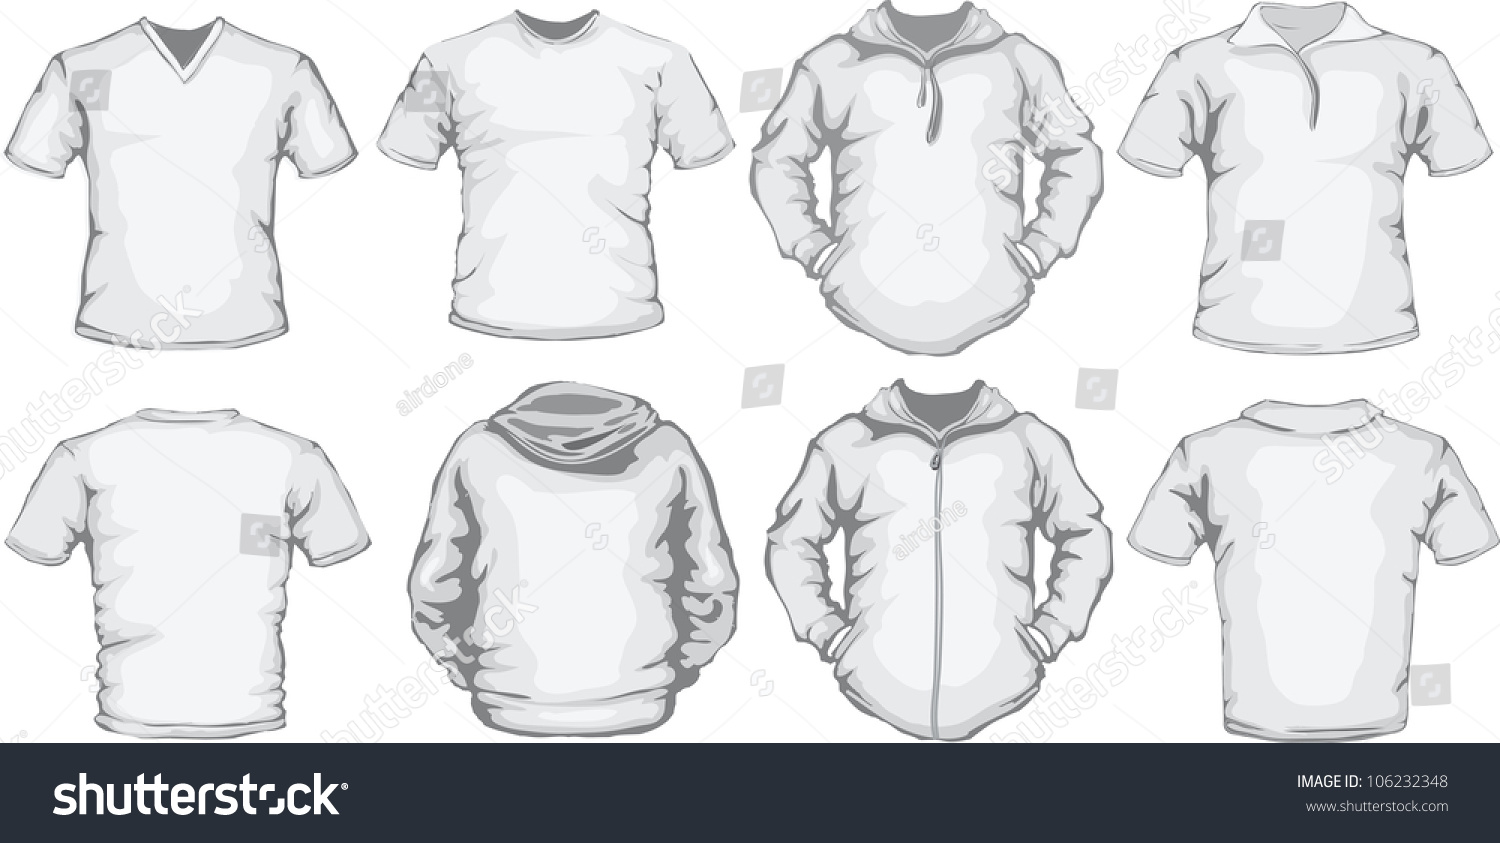 Shirt design vector pack - Vector Set Of Men S Shirts Template In White Front And Back Design Check Out